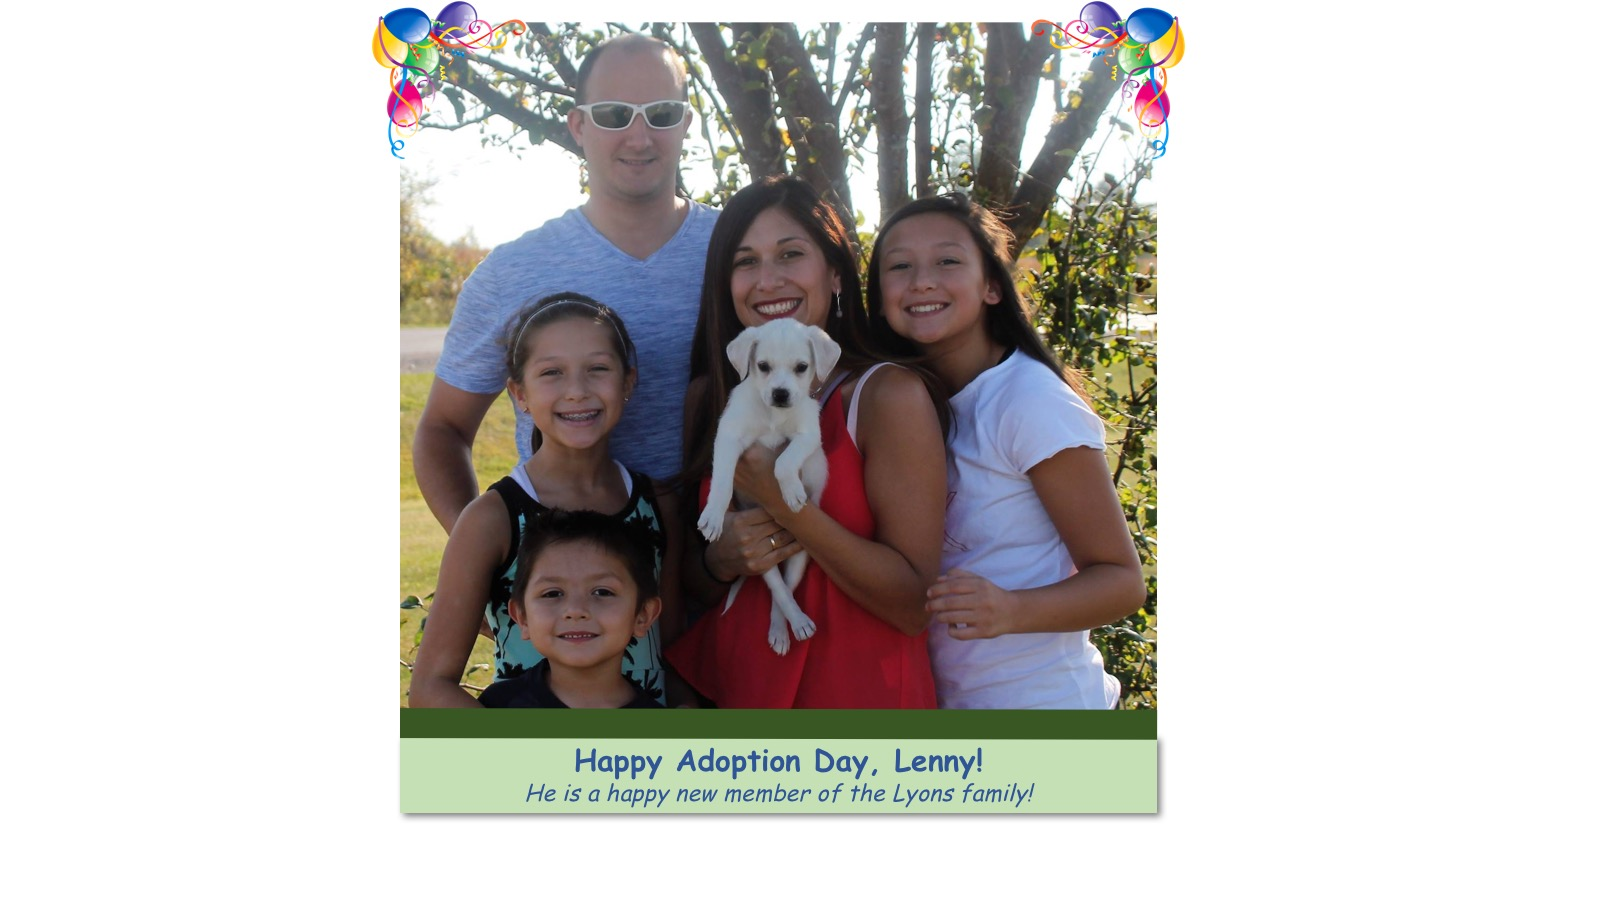 Lenny_Adoption_photo.jpg